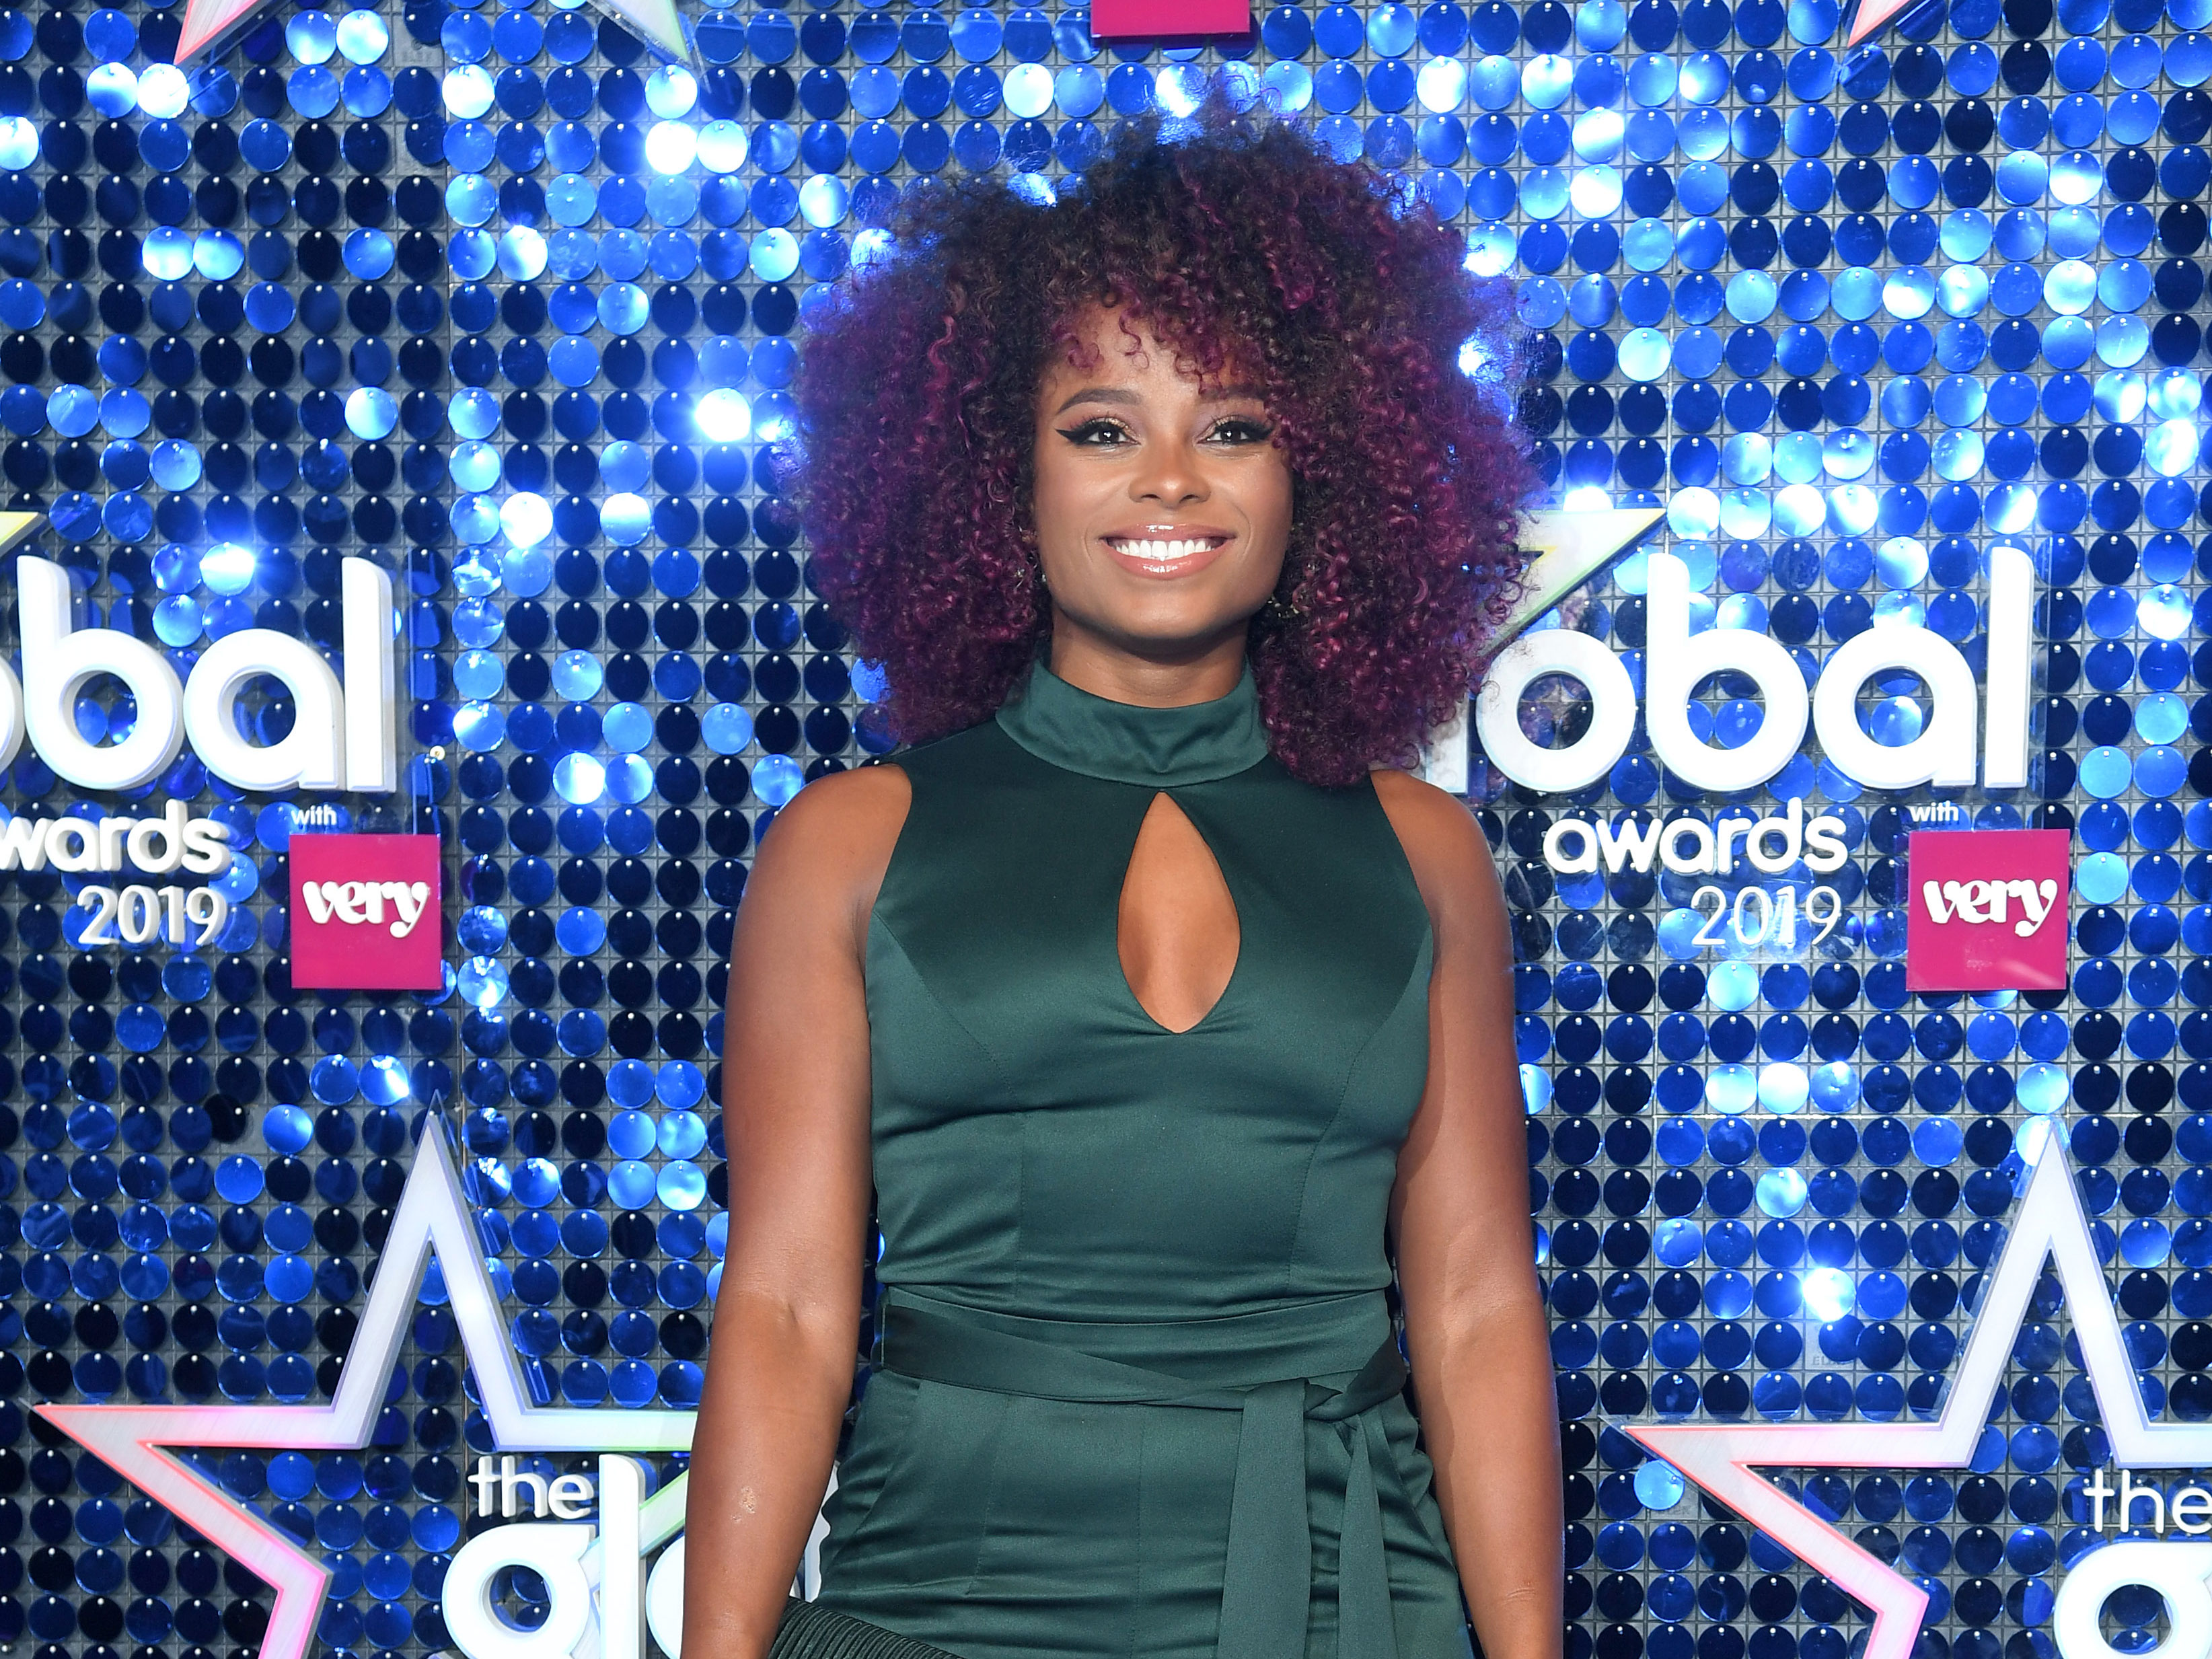 Fleur East looks unrecognisable as she makes this HUGE change to her appearance